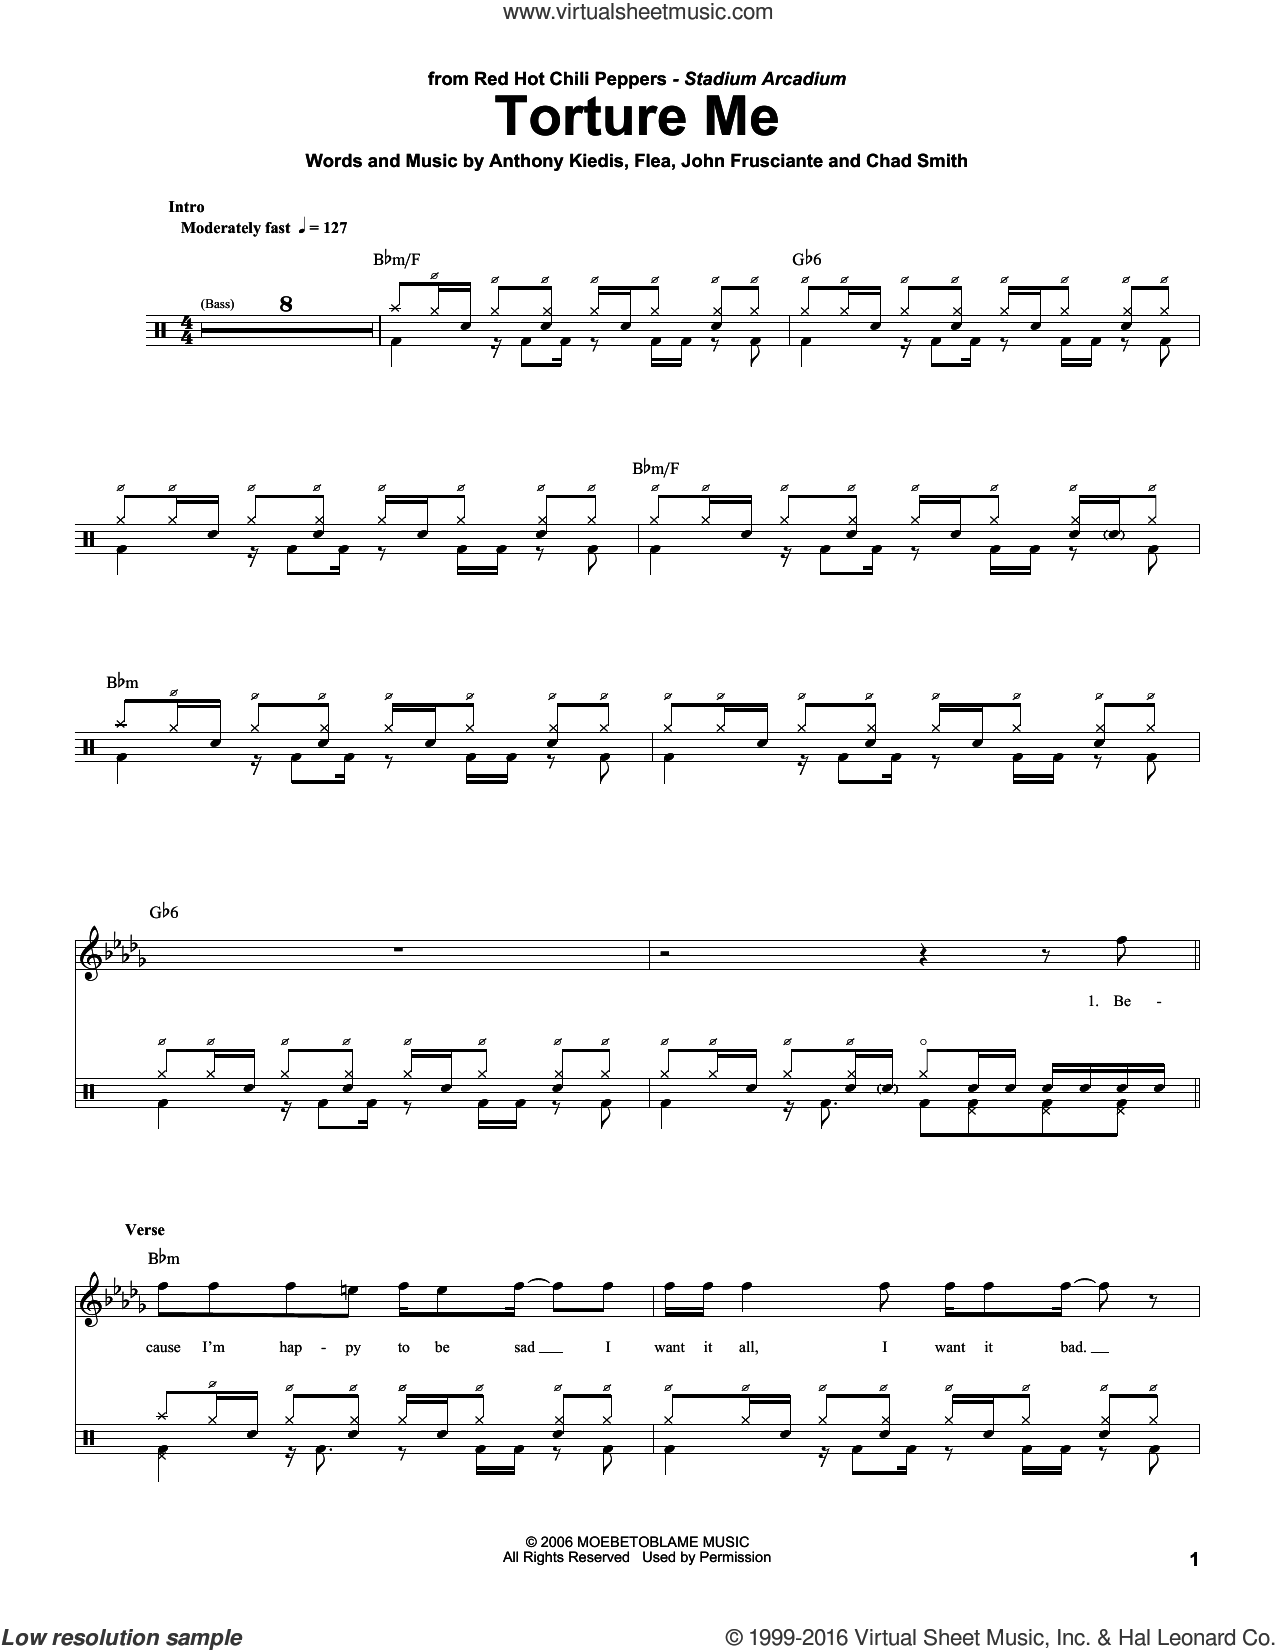 Torture Me sheet music for drums by John Frusciante, Red Hot Chili Peppers and Flea. Score Image Preview.